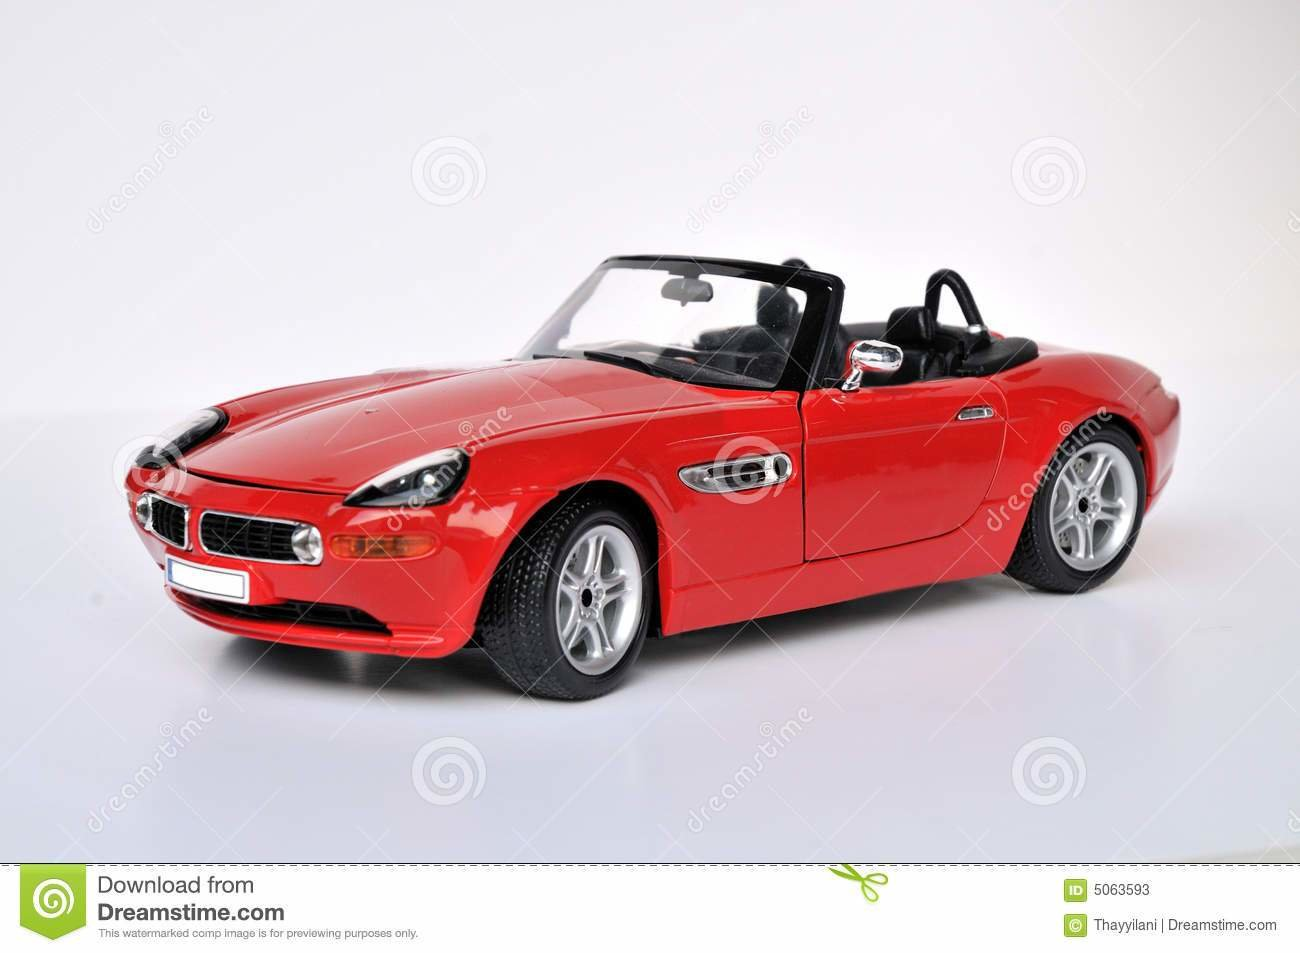 Latest Bmw Sports Car Stock Photos Image 5063593 Free Download